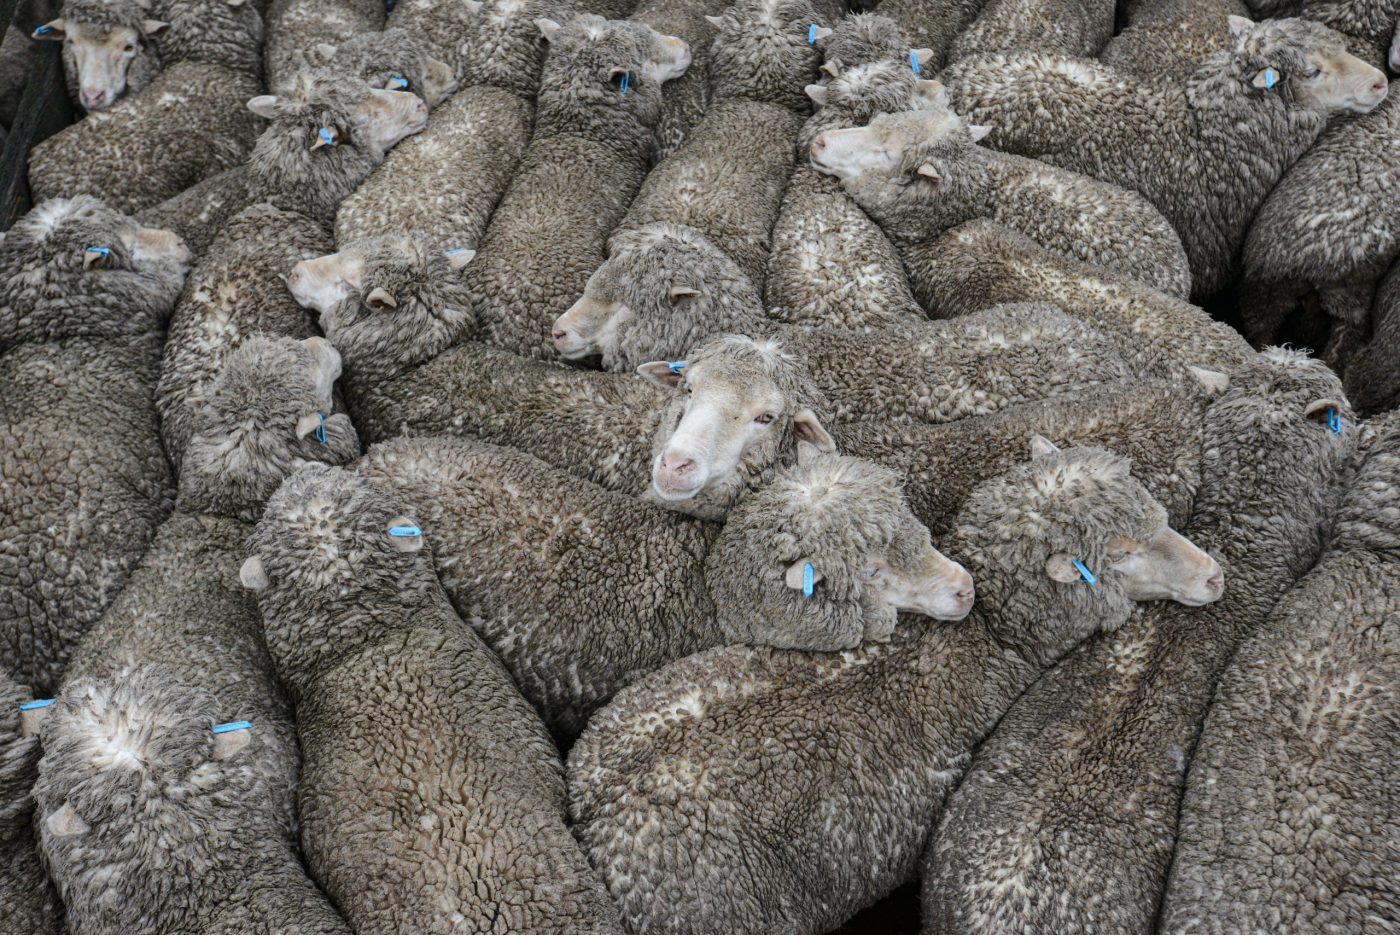 Vertical explainer photo 1 - Tightly packed sheep at the sale yards. Australia, 2013.